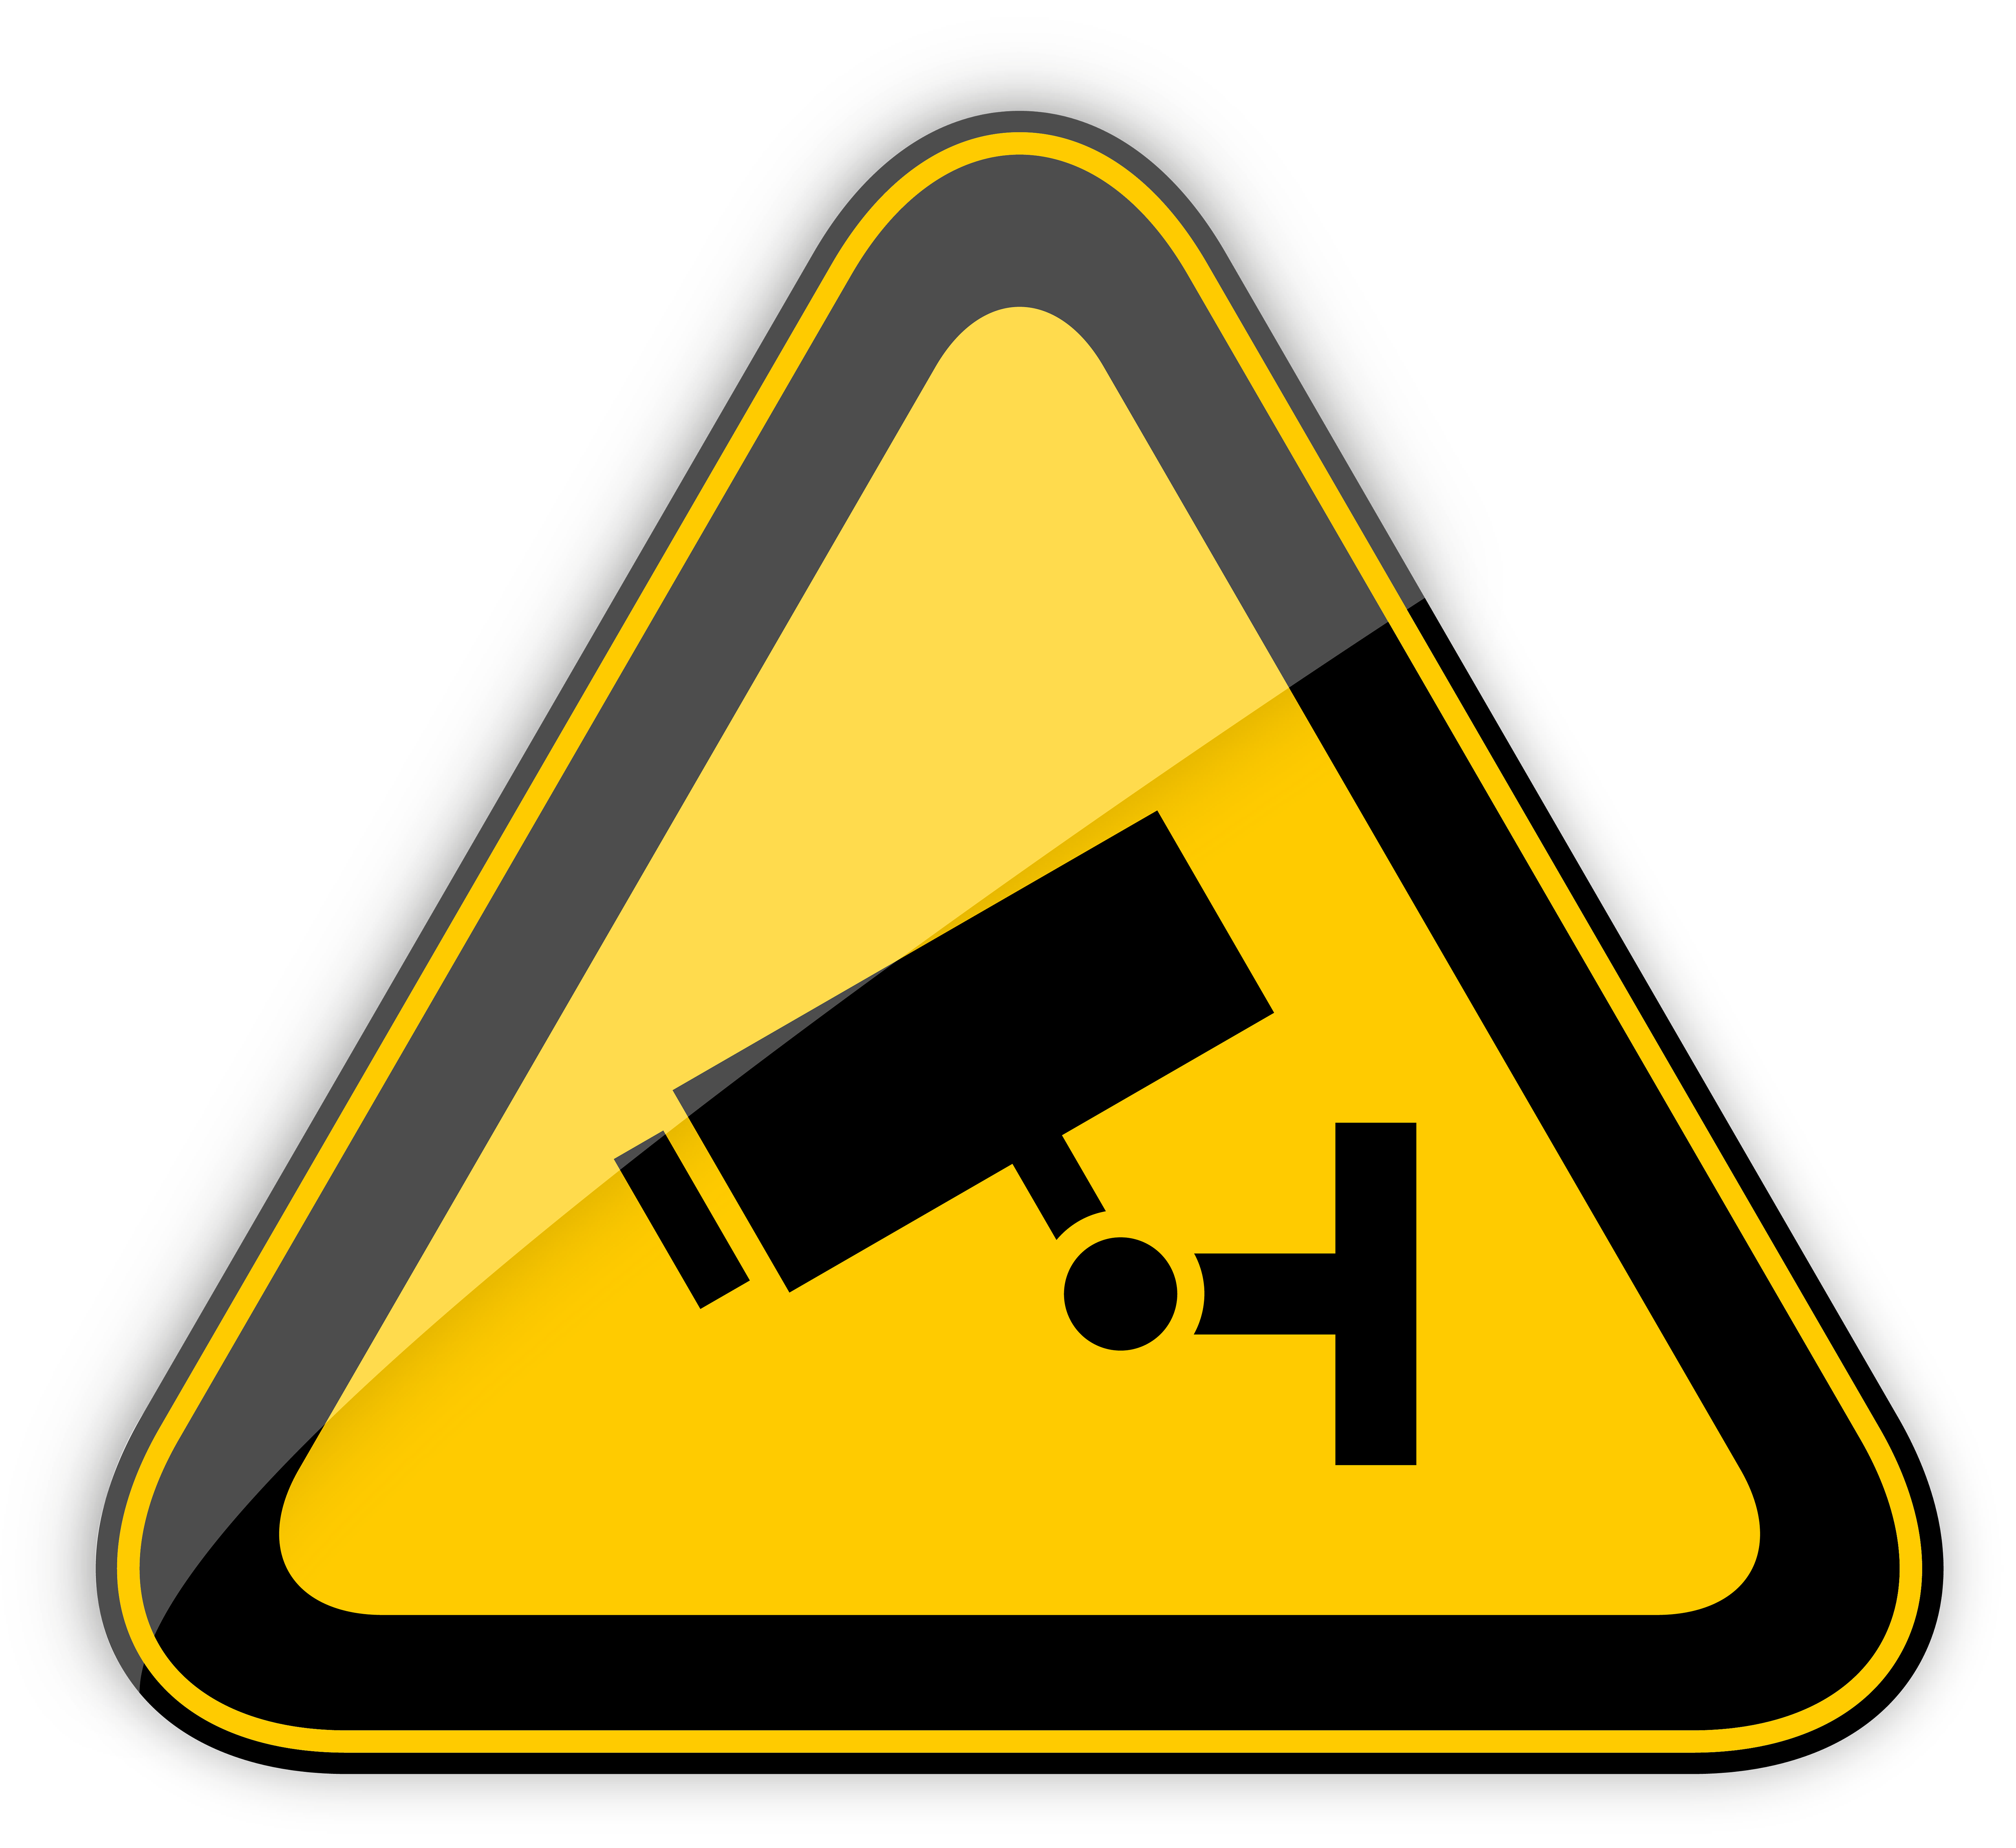 Operation cctv in warning. Nurse clipart operating theatre